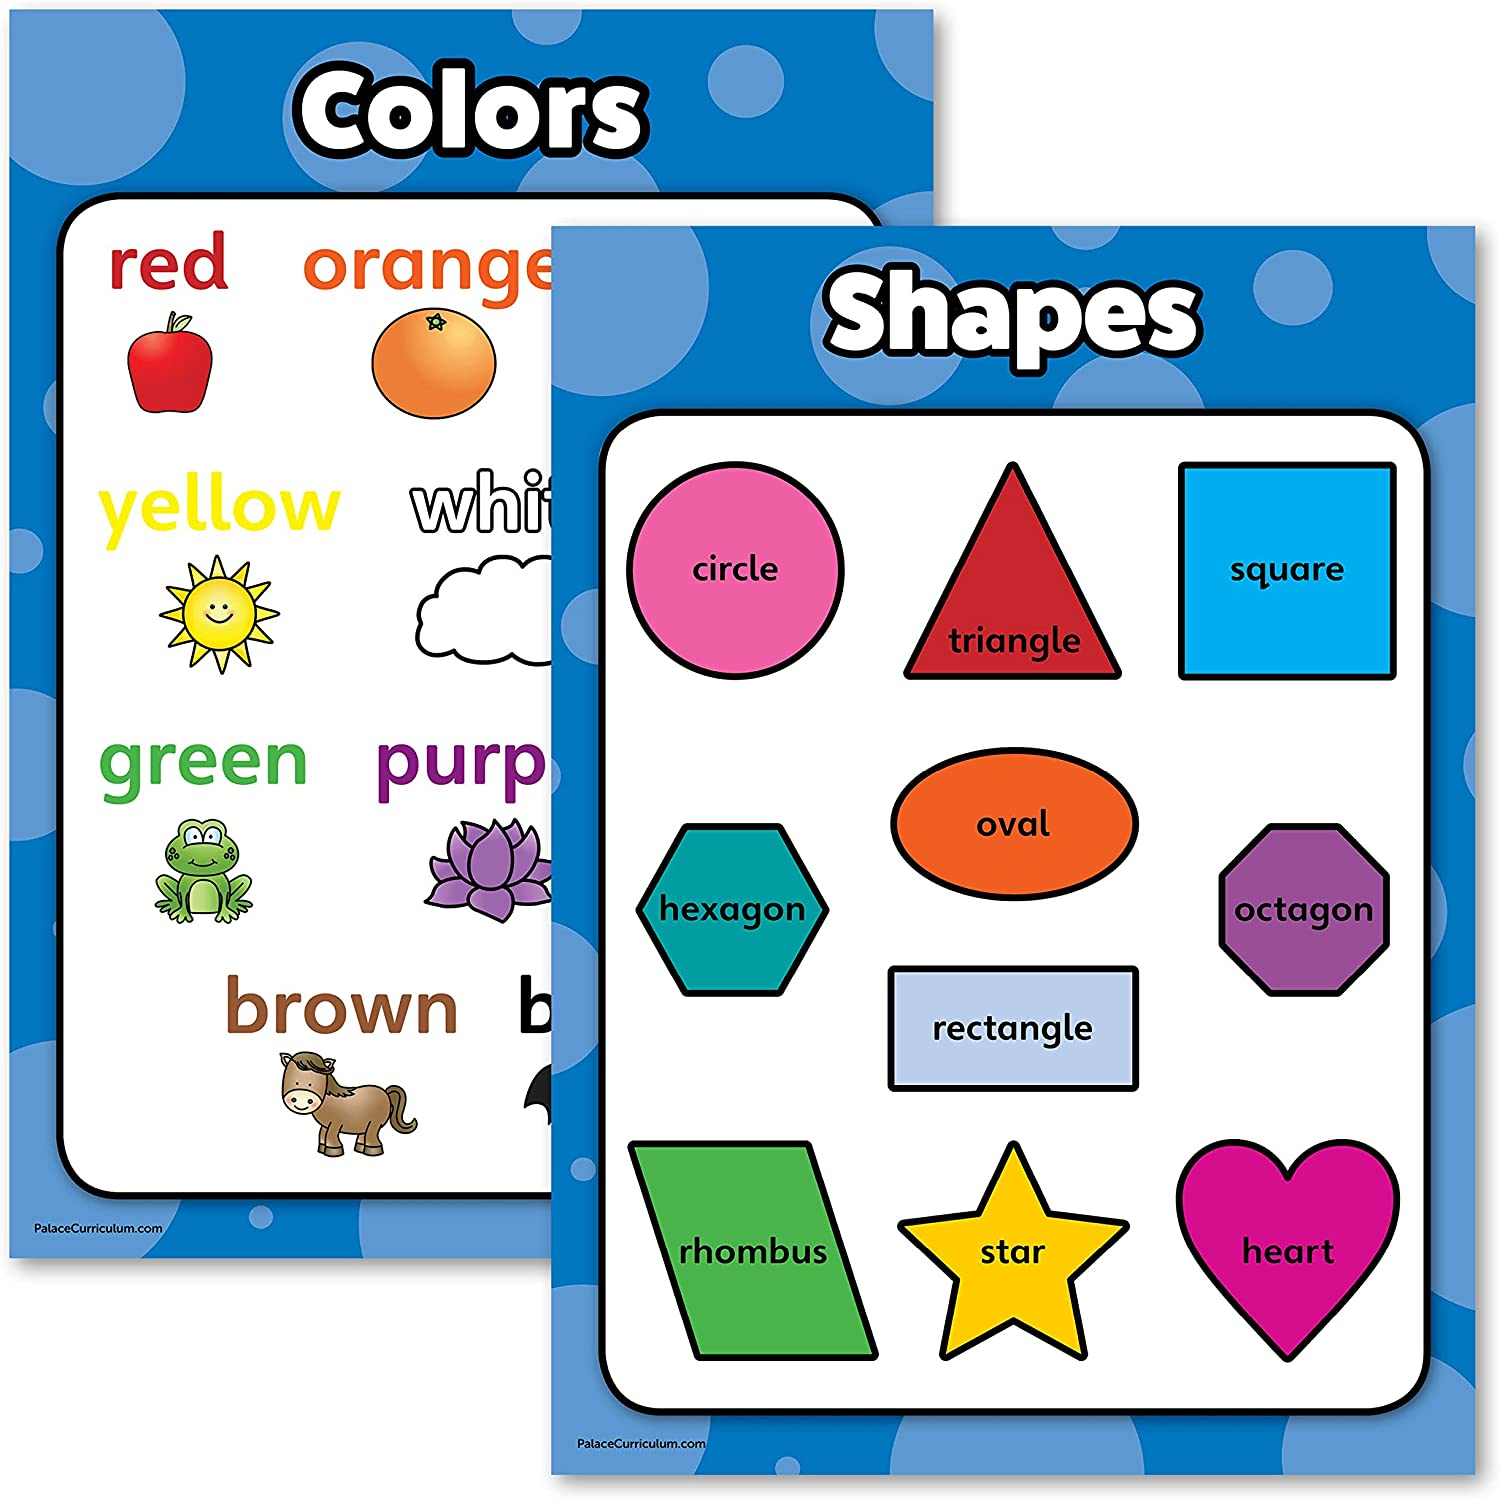 Shapes & Colors Poster Chart Set for Kids - LAMINATED - Double Sided (18x24)